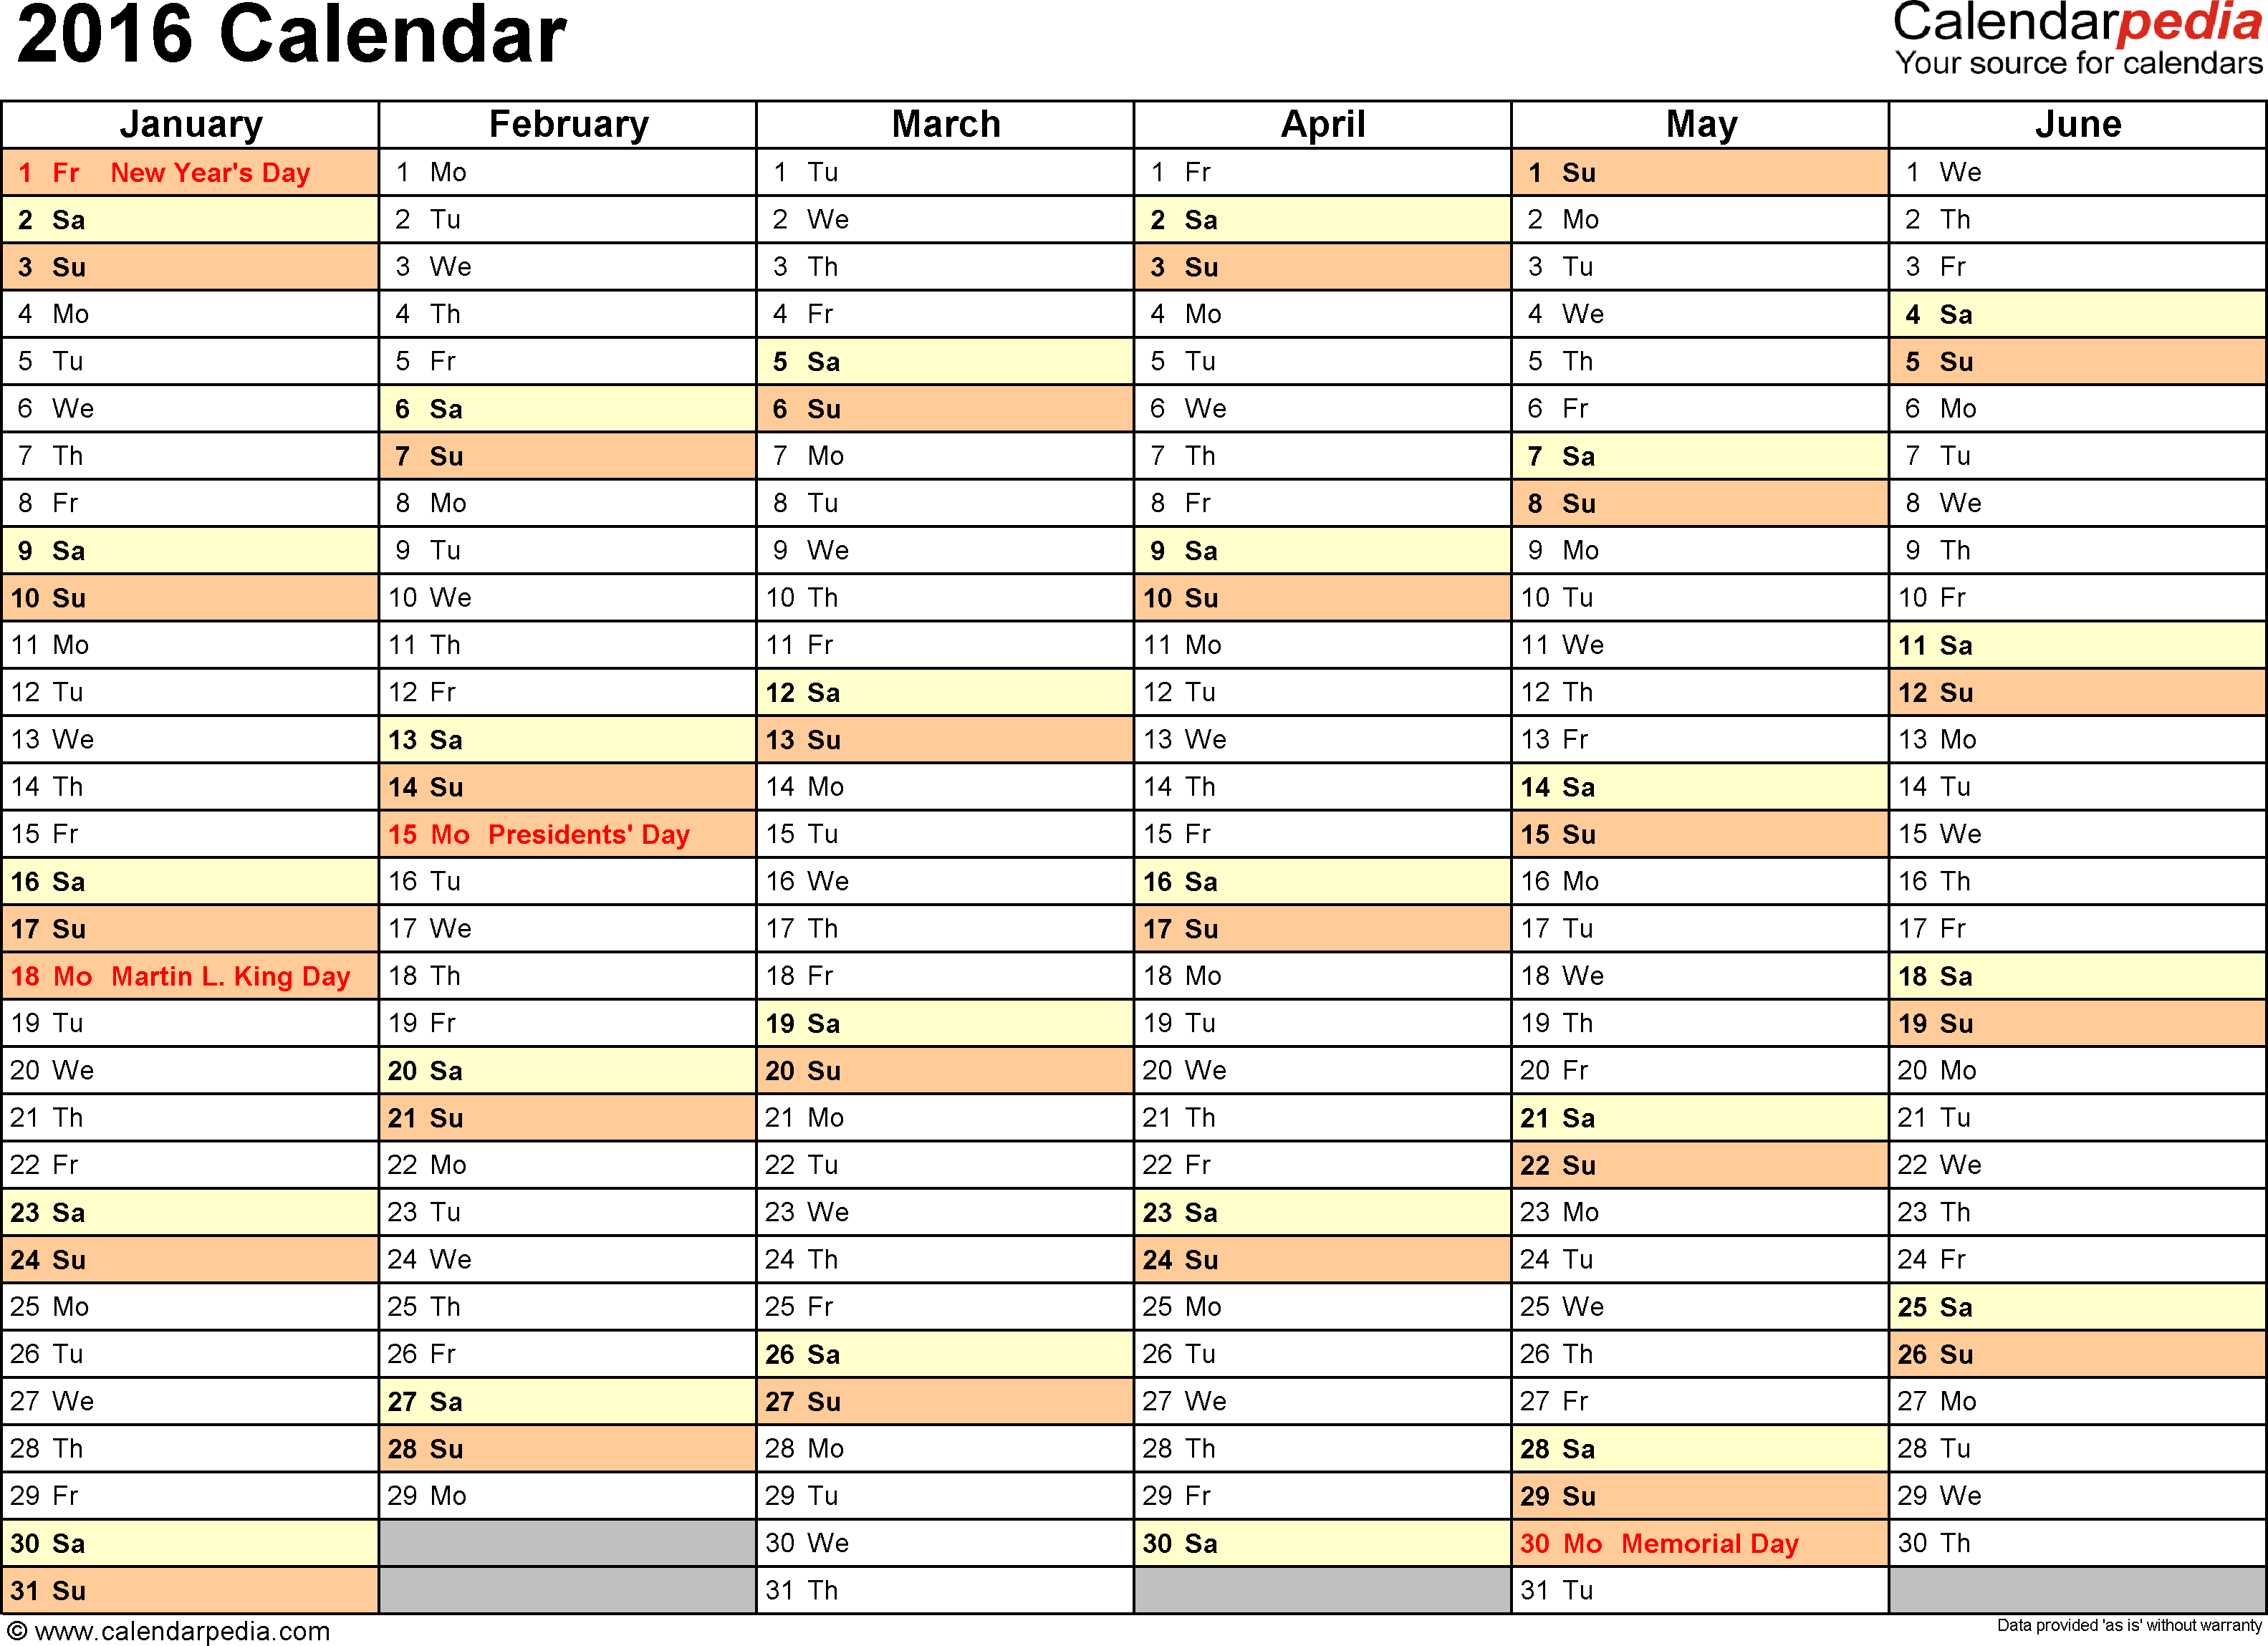 Ediblewildsus  Outstanding  Calendar  Download  Free Printable Excel Templates Xls With Licious Template   Calendar For Excel Months Horizontally  Pages Landscape Orientation With Charming Tracking Work Hours In Excel Also Risk Modelling In Excel In Addition Compare Rows In Excel And Ms Excel Certification India As Well As Excel F Additionally Excel Cell Line Break From Calendarpediacom With Ediblewildsus  Licious  Calendar  Download  Free Printable Excel Templates Xls With Charming Template   Calendar For Excel Months Horizontally  Pages Landscape Orientation And Outstanding Tracking Work Hours In Excel Also Risk Modelling In Excel In Addition Compare Rows In Excel From Calendarpediacom